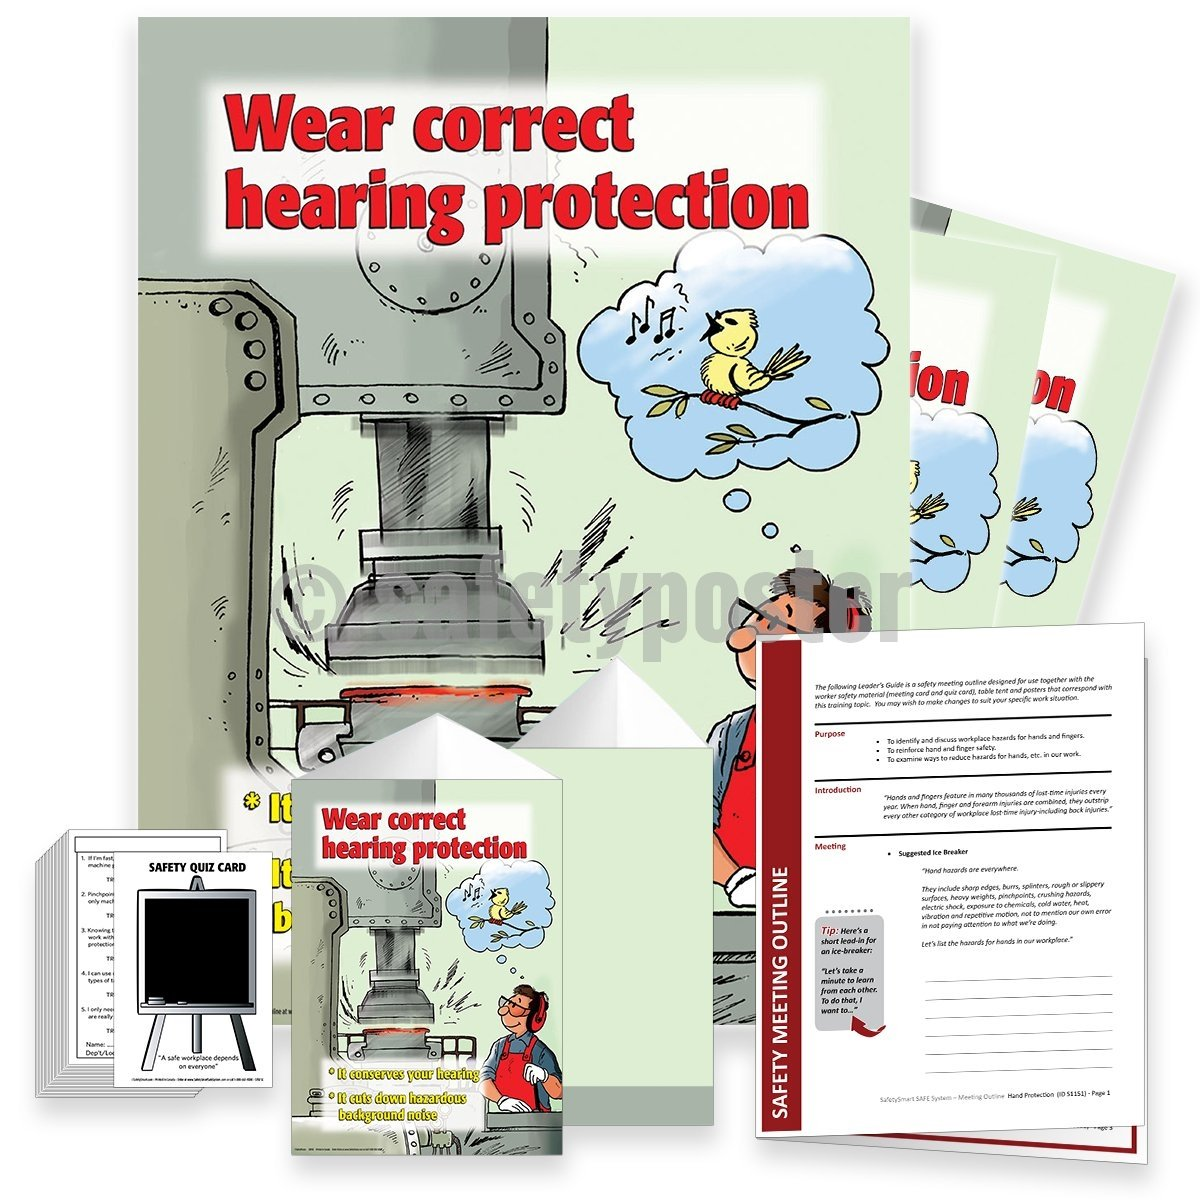 Safety Meeting Kit - Wear Correct Hearing Protection Kits